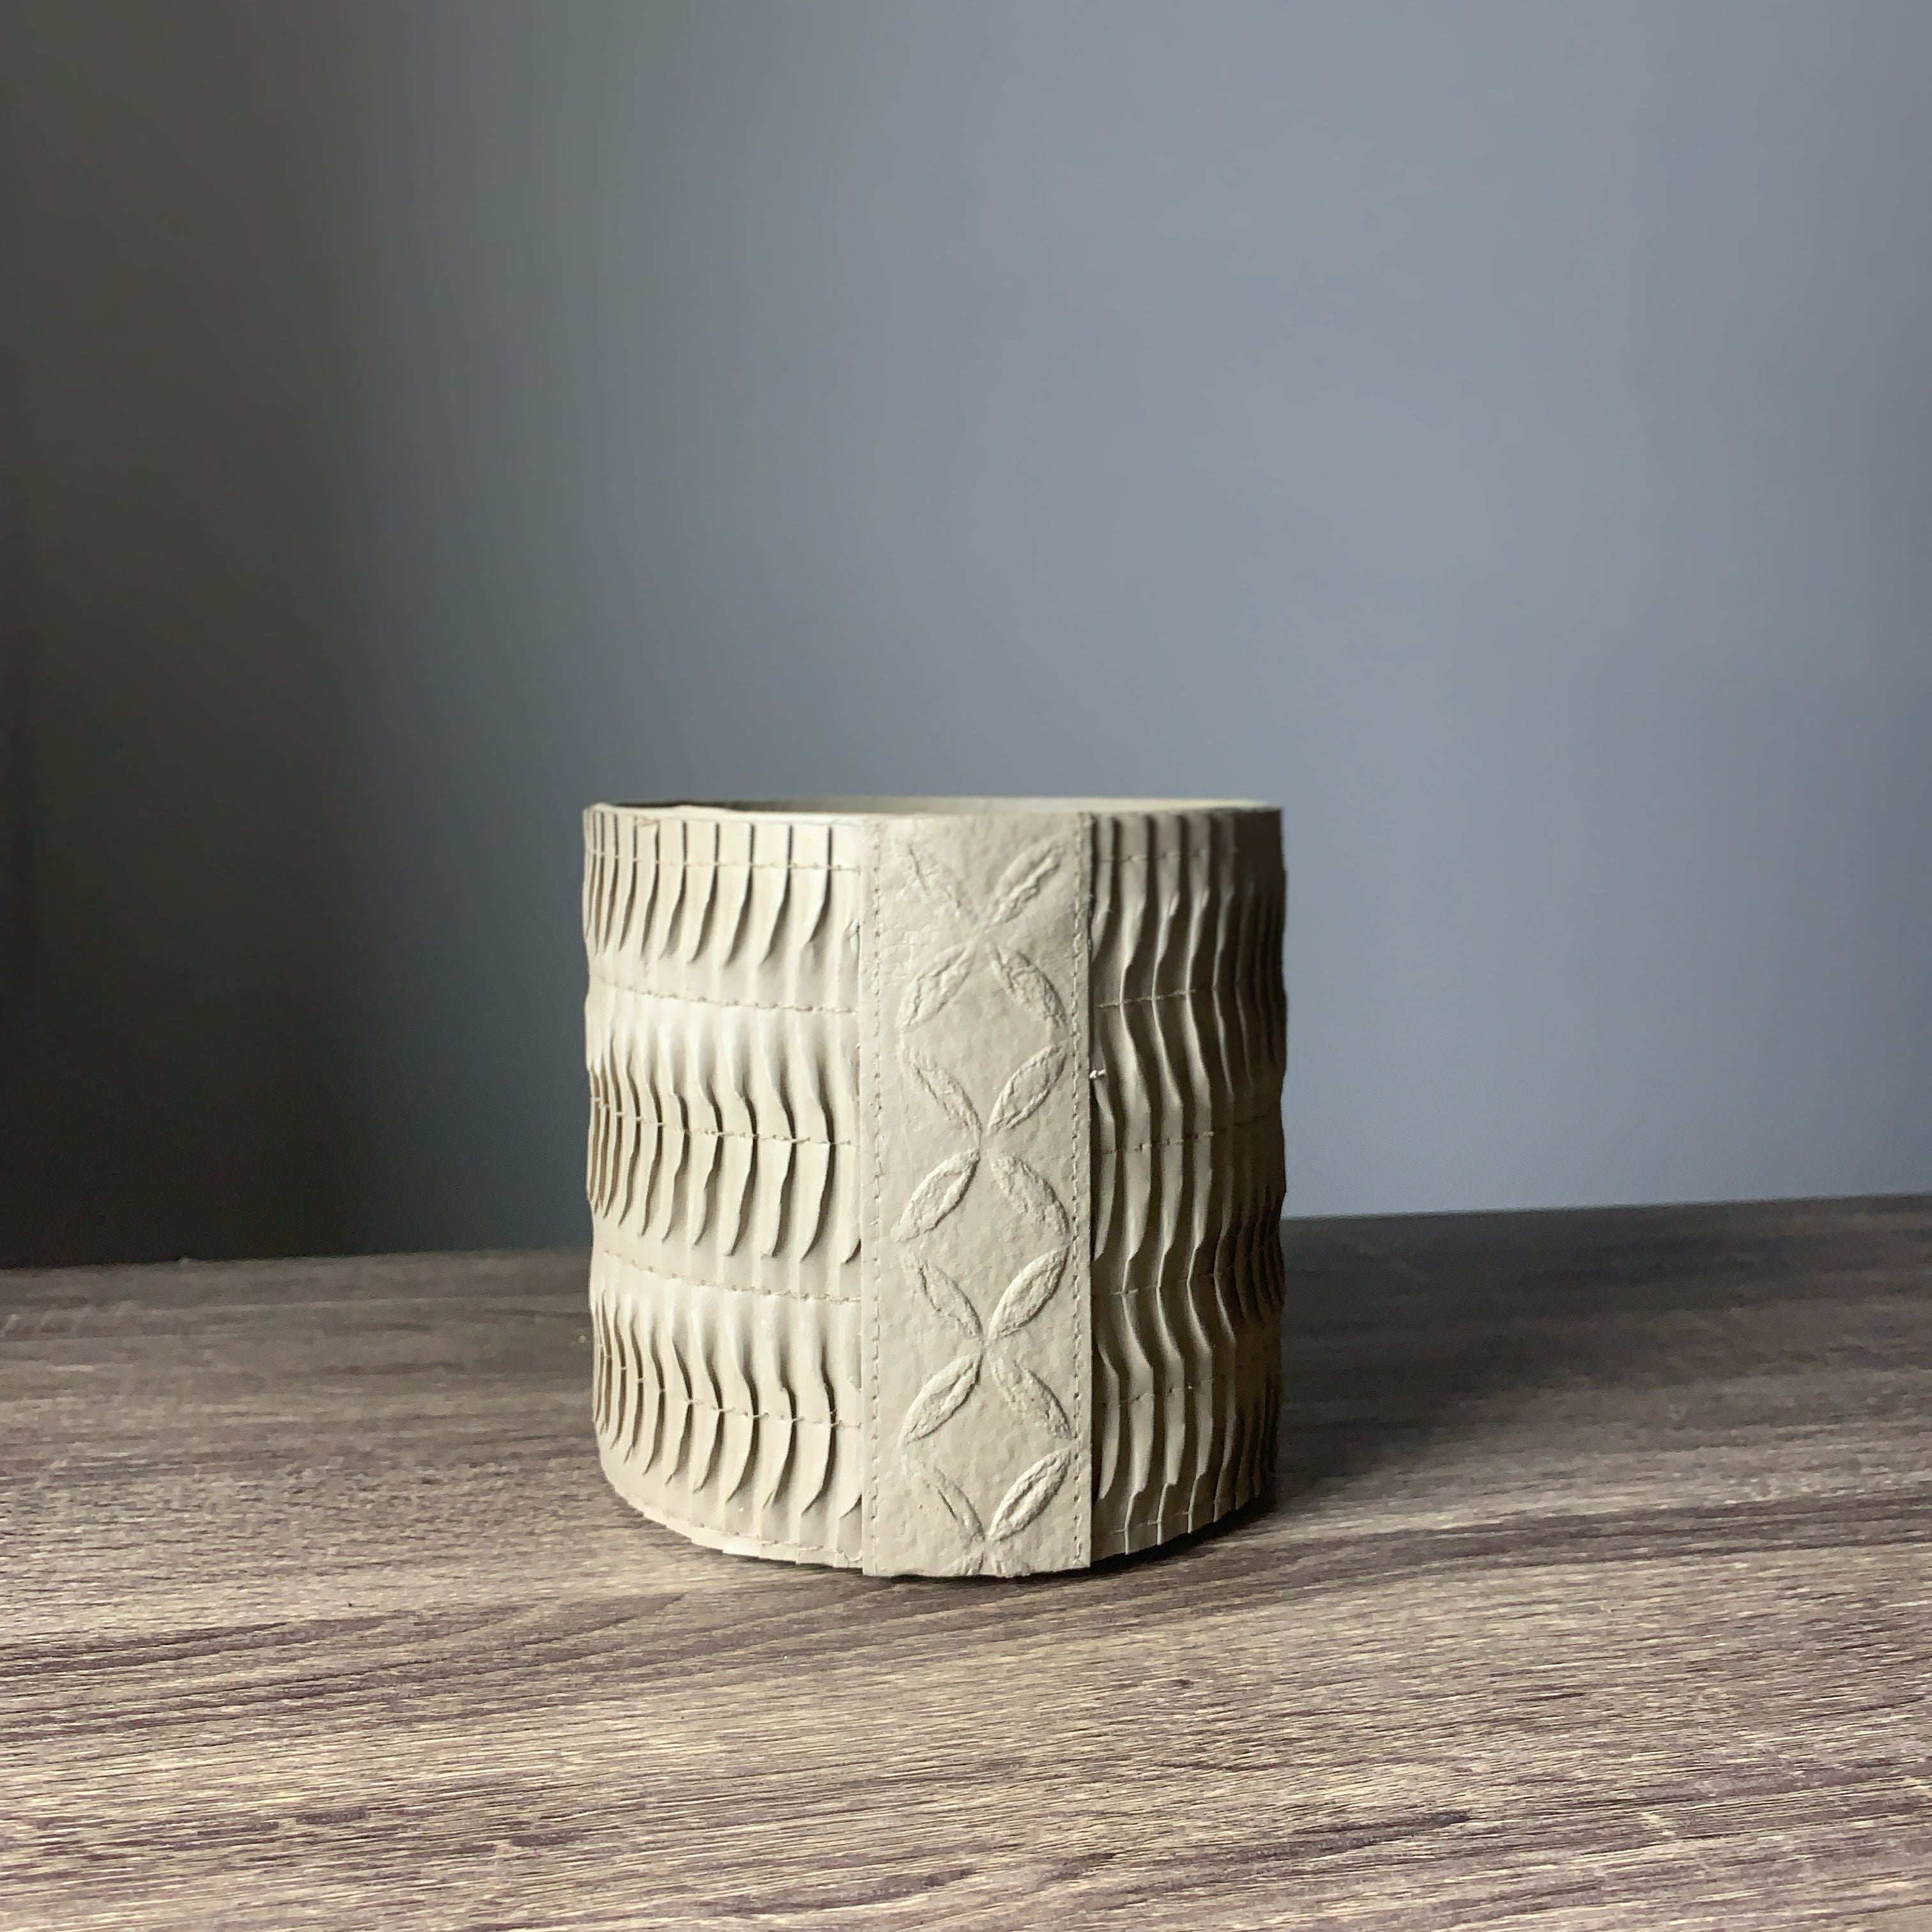 Stitched Paper Grow Cylinder